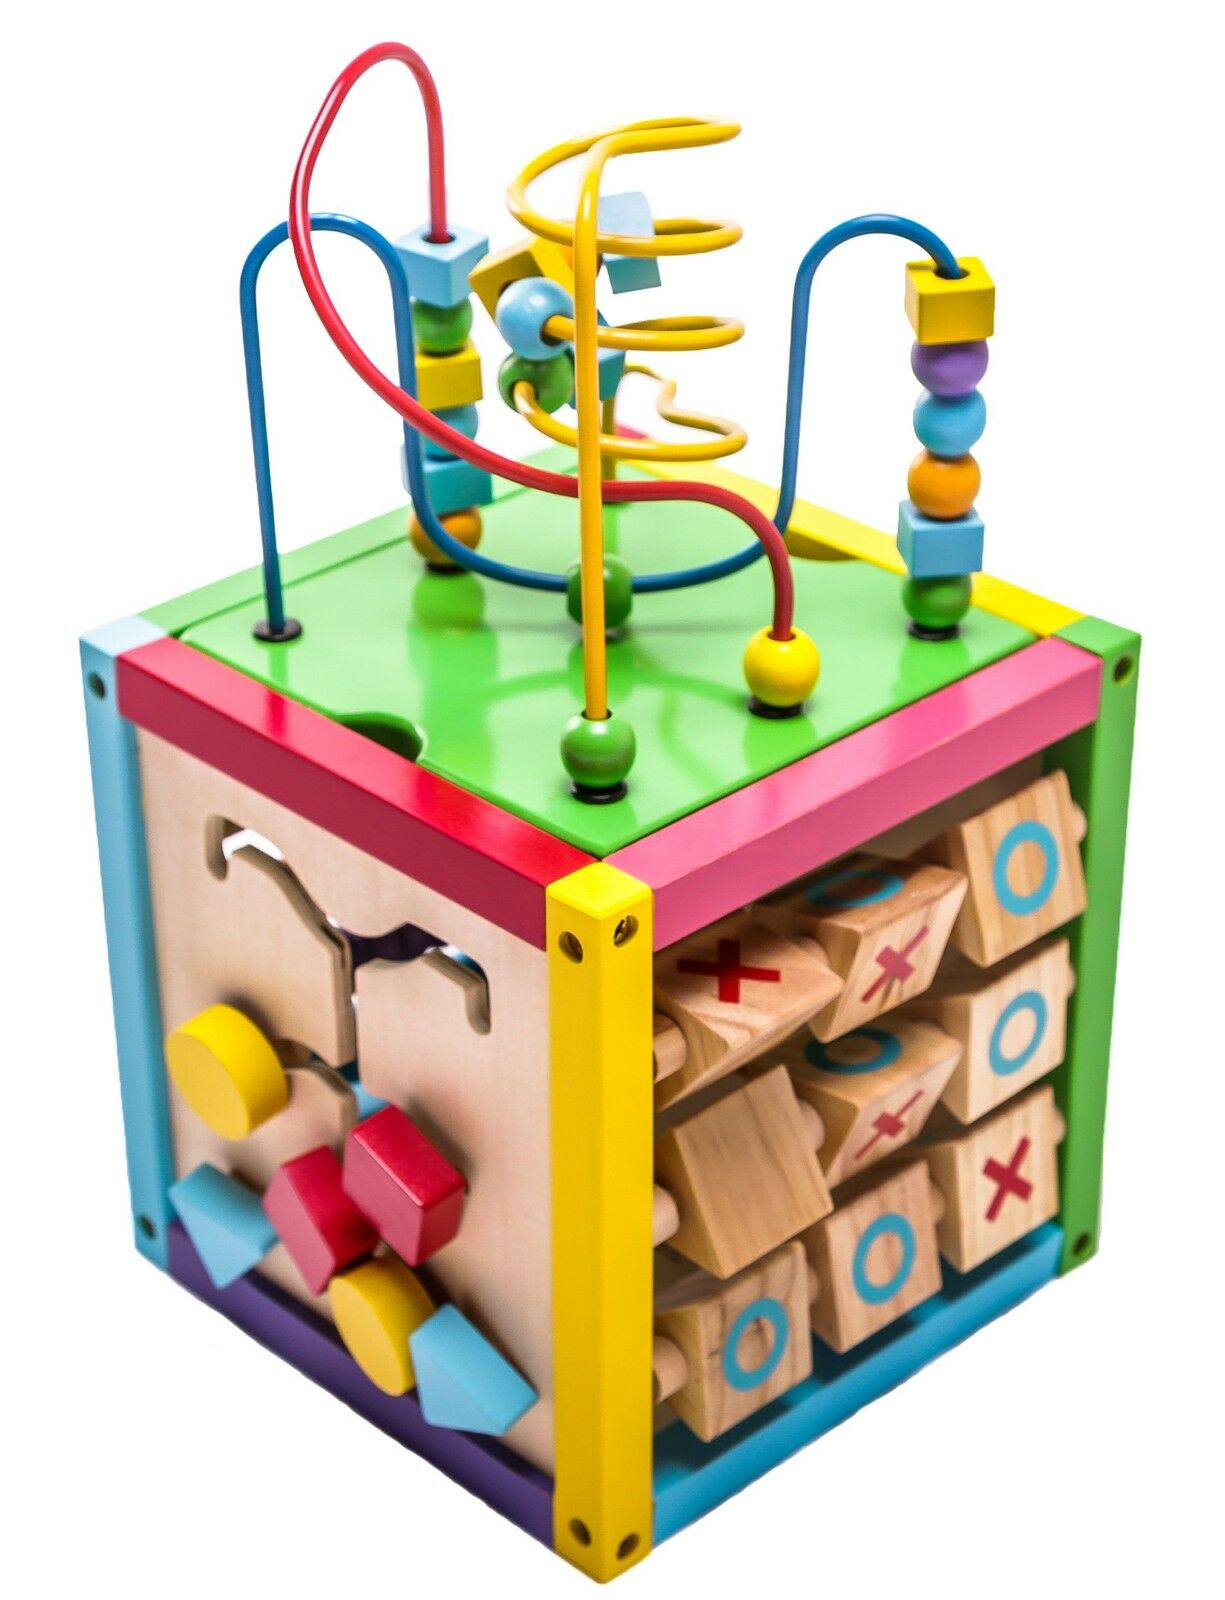 Wooden Learning 6 In1 Play Cube Activity Center 8 Inches Toys Kids